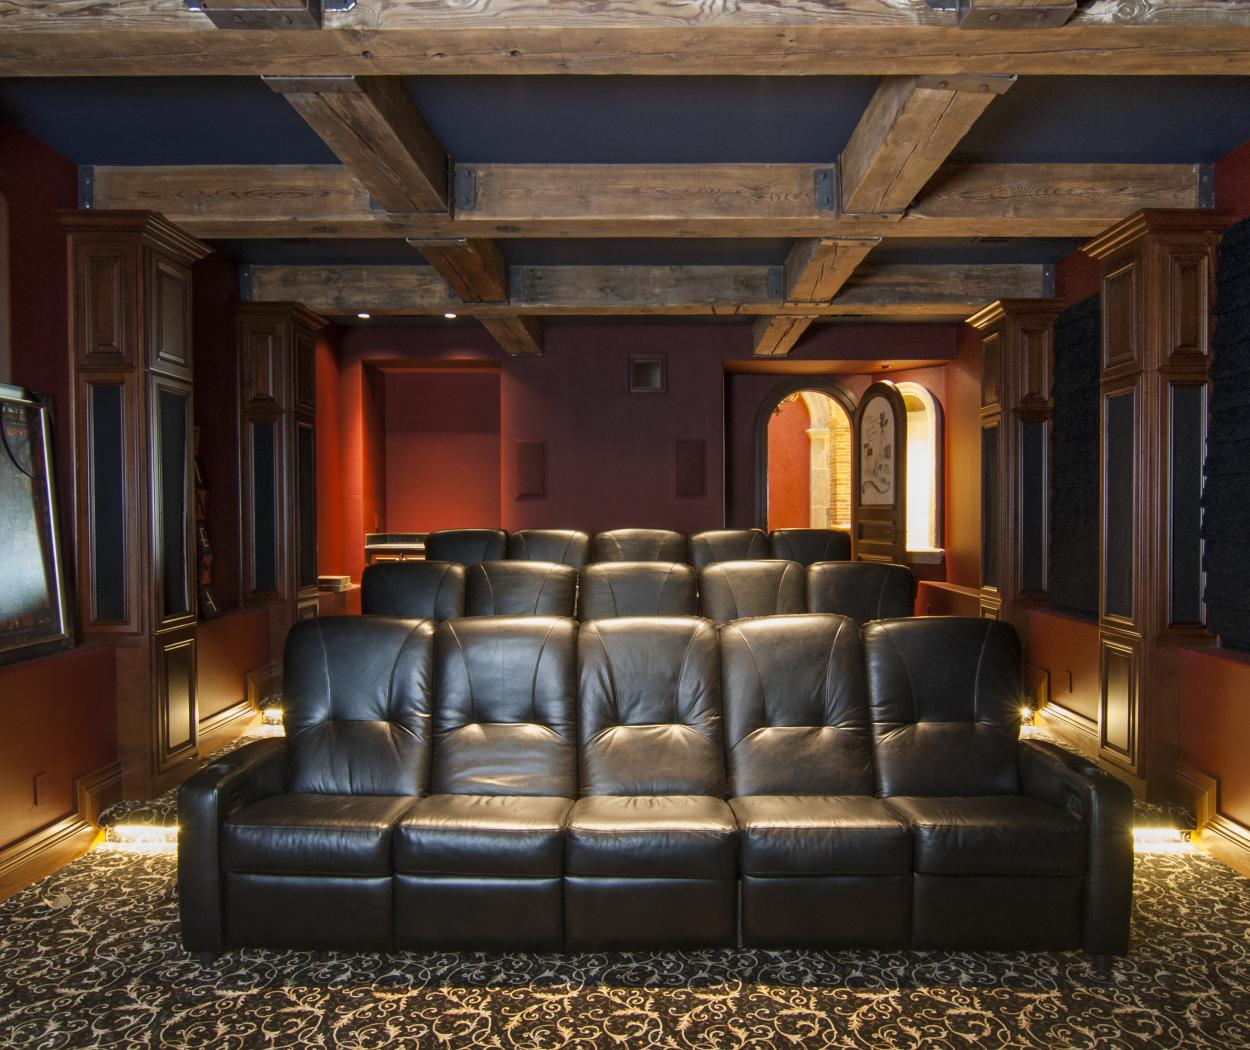 Beautiful Traditional Built-Ins for a Theater Room with Speaker Cabinet Door Panels